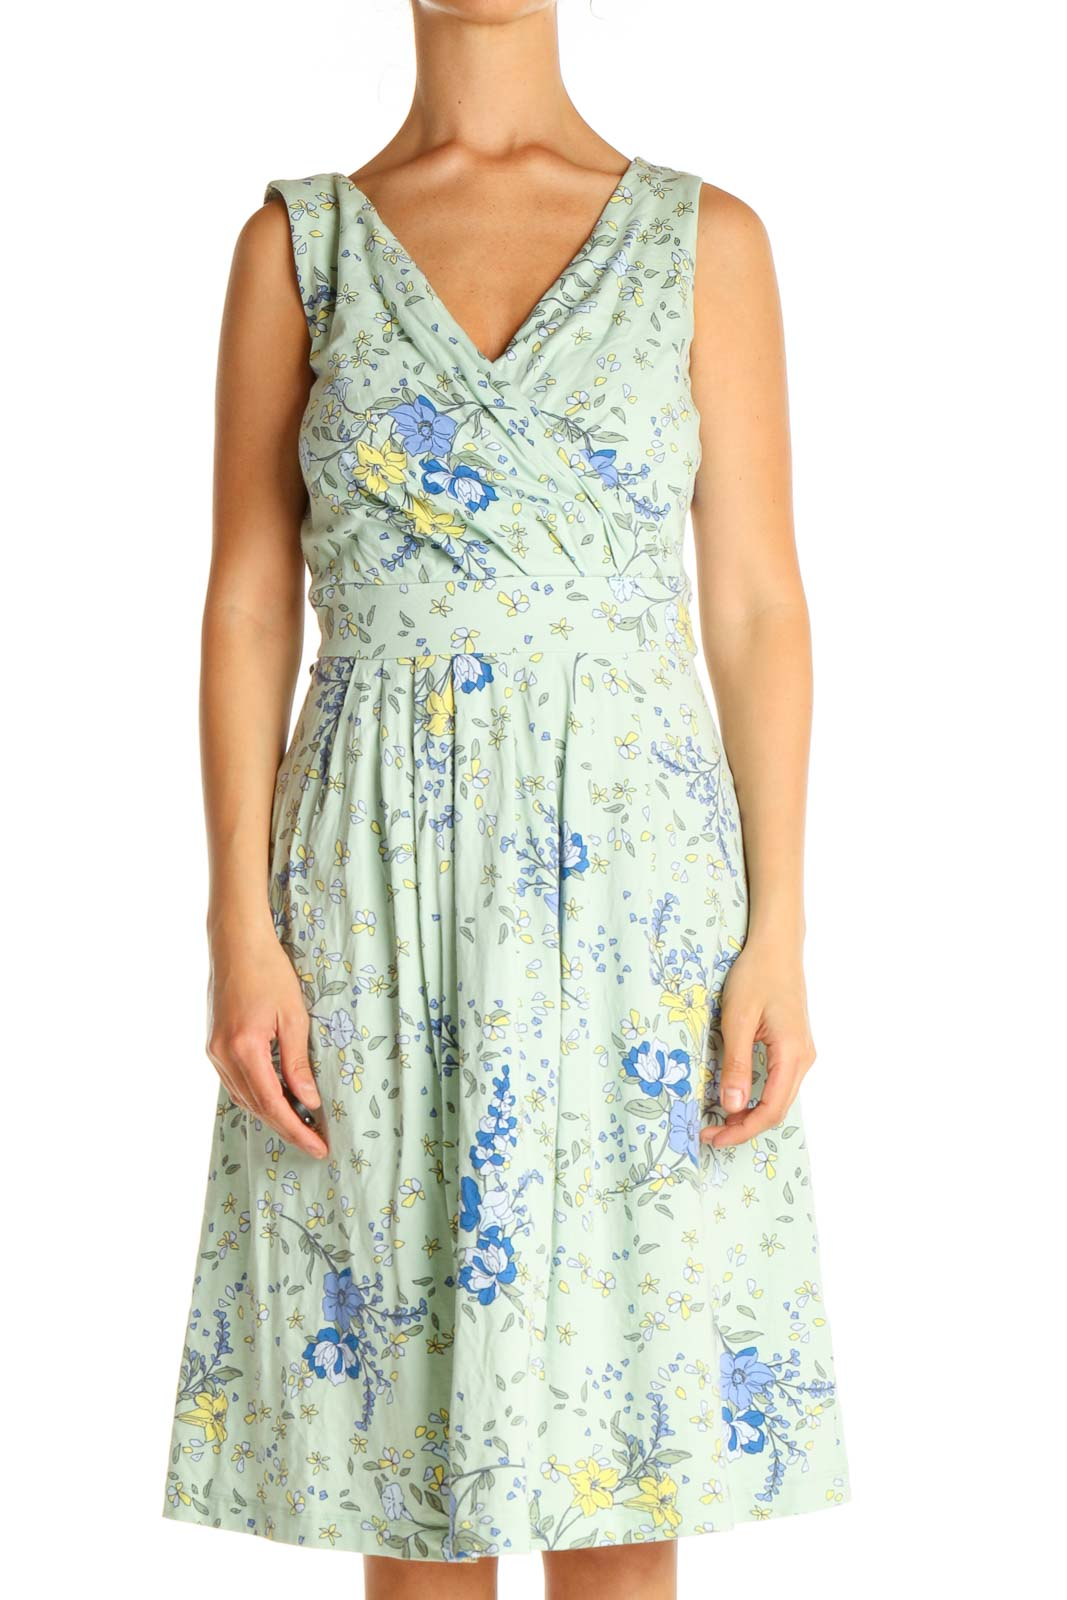 Green Floral Print Casual Fit & Flare Dress Front